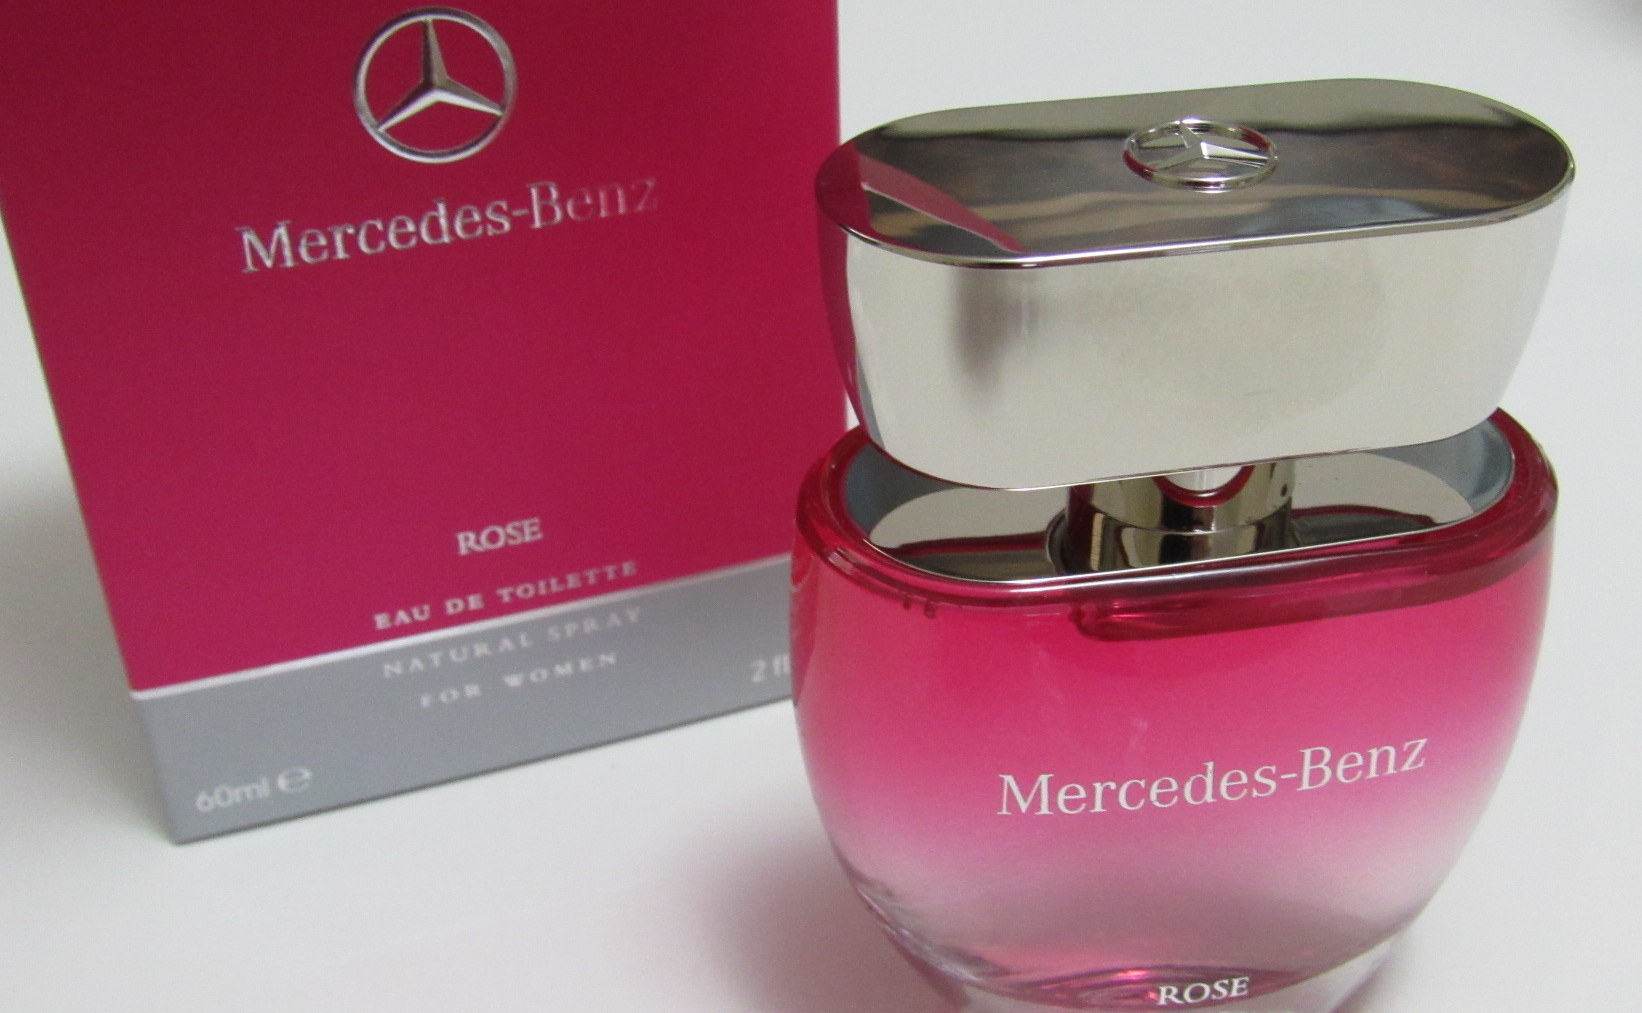 Mercedes Benz Rose for Women #fragrancemarket @fragrancemarketus